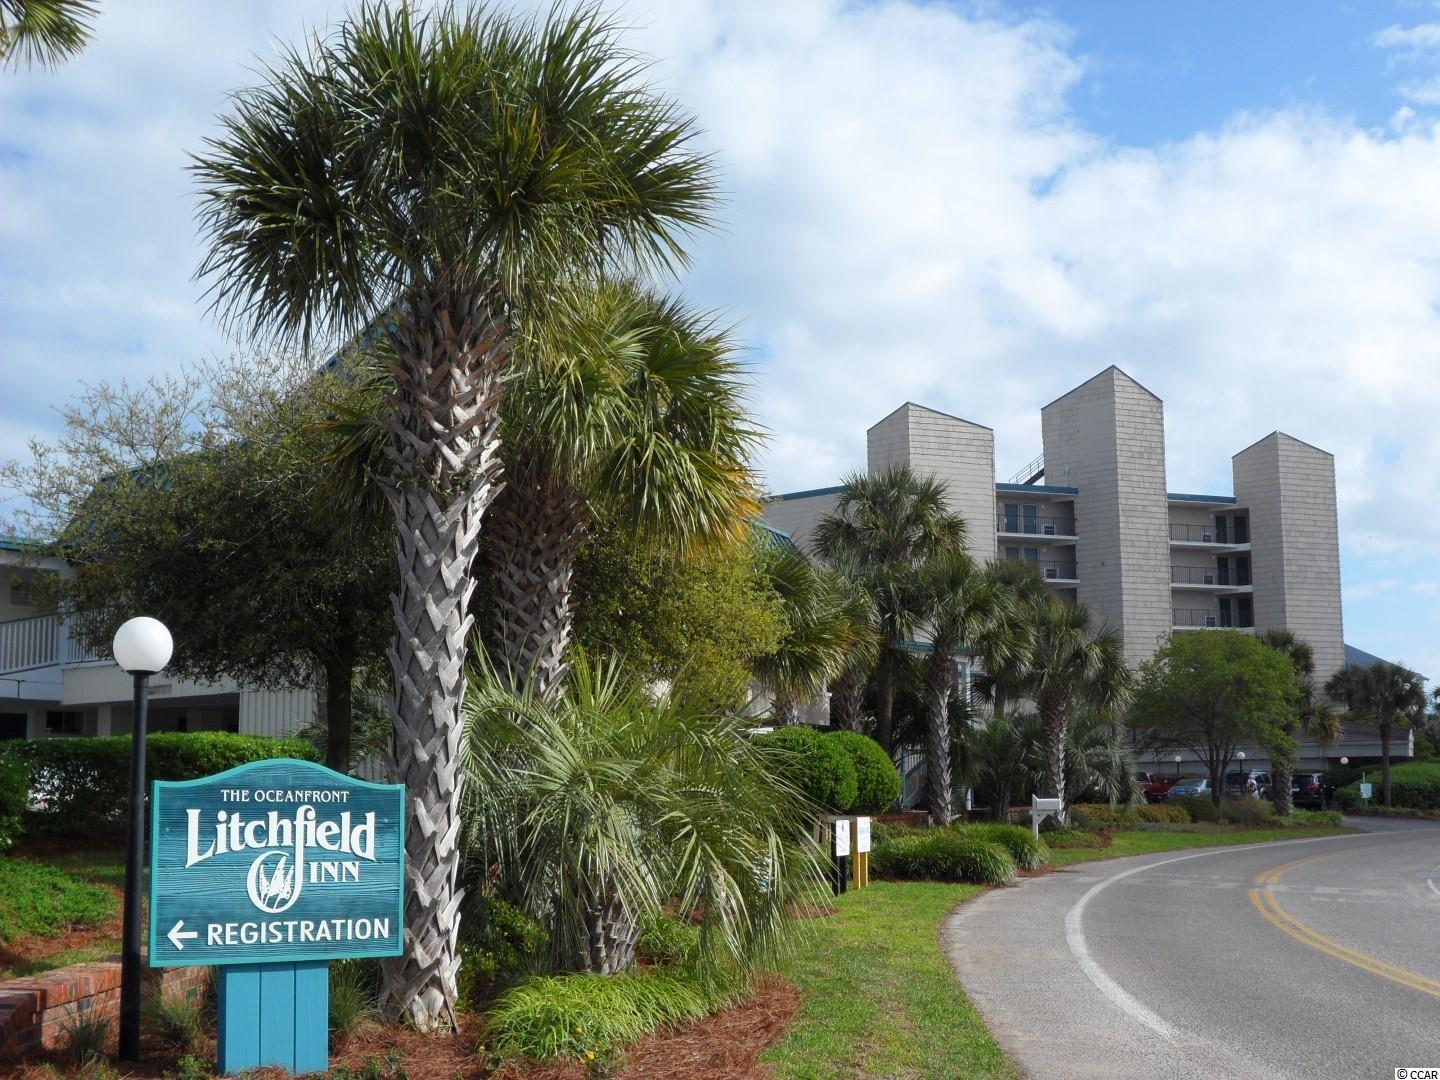 Awesome condo overlooking the pool and ocean…wow! Tastefully decorated and well maintained condo at the Litchfield Inn. This unit is located on the ground floor with no stairs to climb. Direct access to the pool from your sliding door. Relax beside one of the two oceanfront pools. Dine at the open air poolside restaurant or upstairs overlooking the beach and ocean at our areas only oceanfront restaurant. Enjoy a totally relaxing environment where there is no need to leave the beach area! Square footage is approximate and not guaranteed. Buyers responsible for verification.